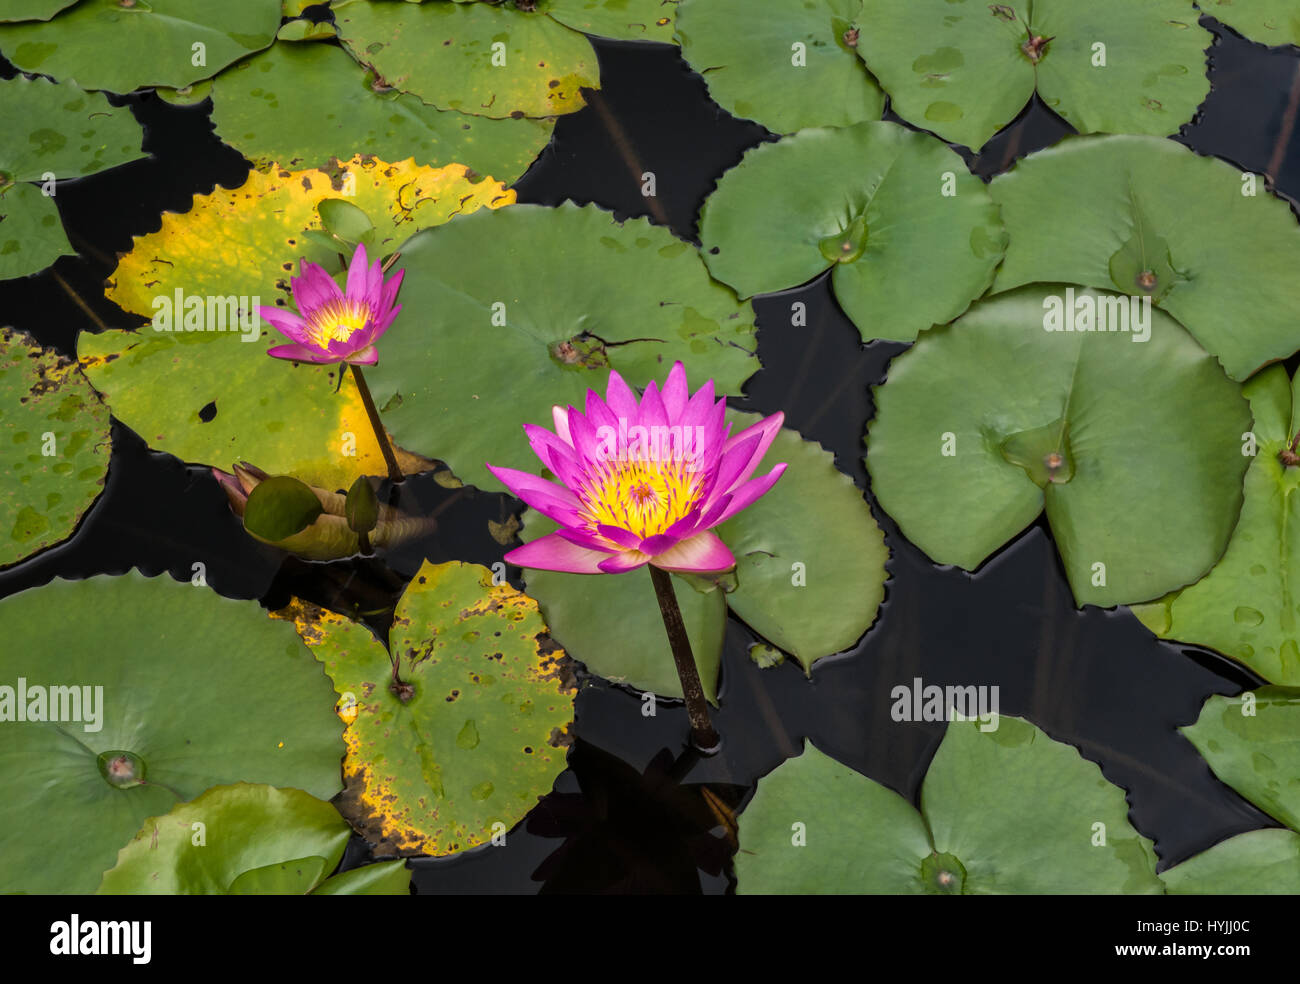 2 flowering pink water lilies hovering over buds and leaves in a water pond. - Stock Image